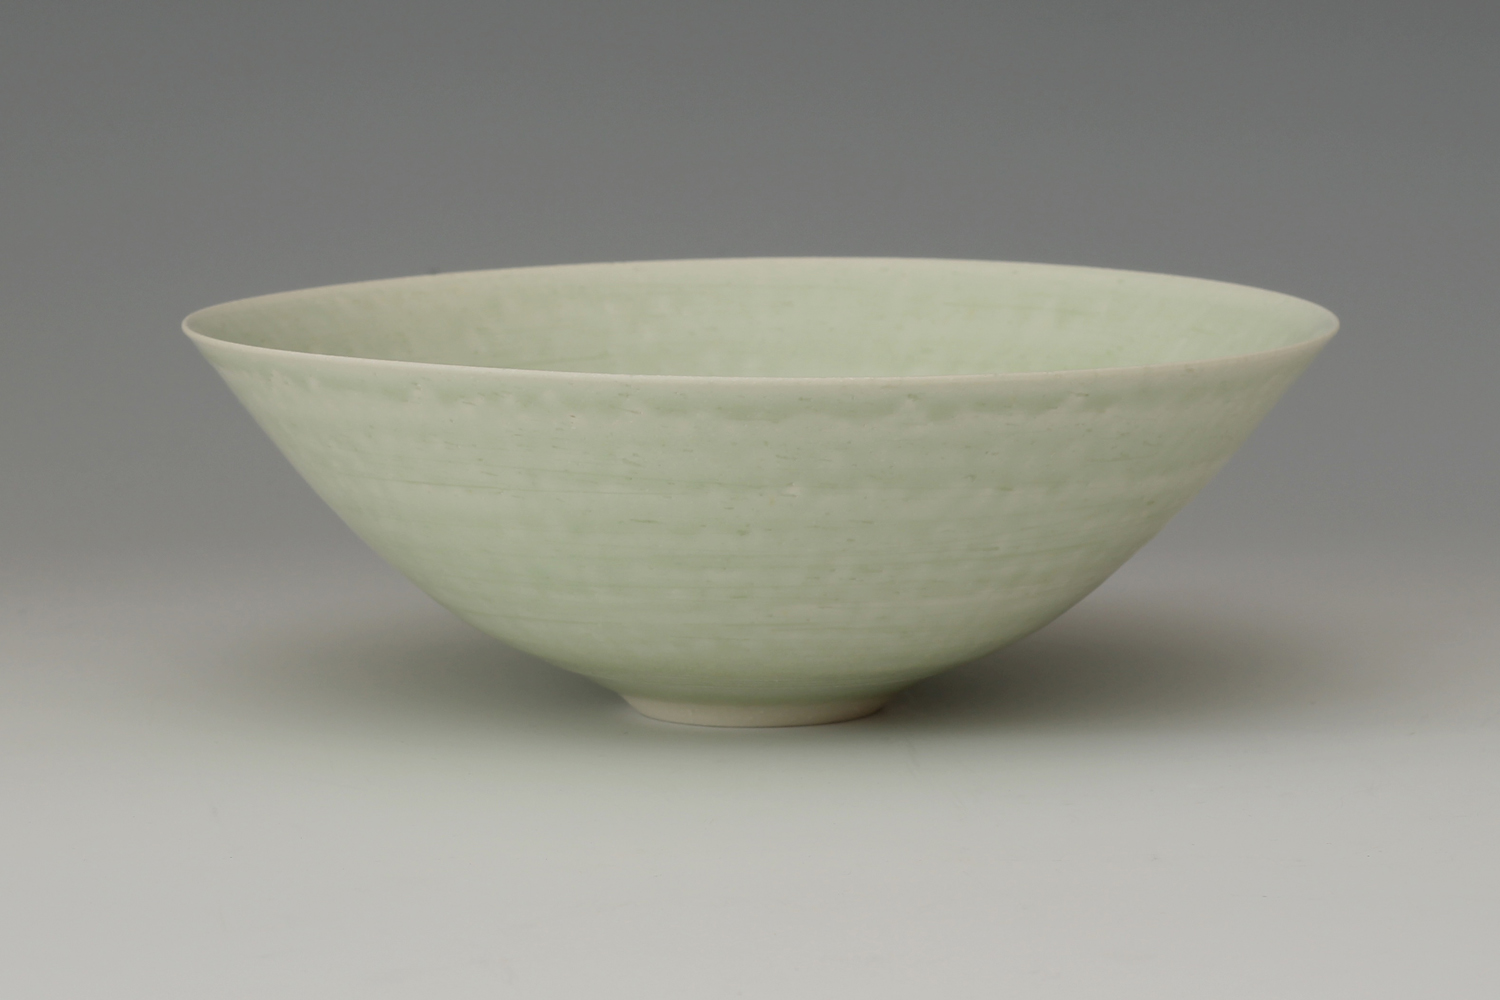 Peter Wills Ceramic Pale Green Bowl 179